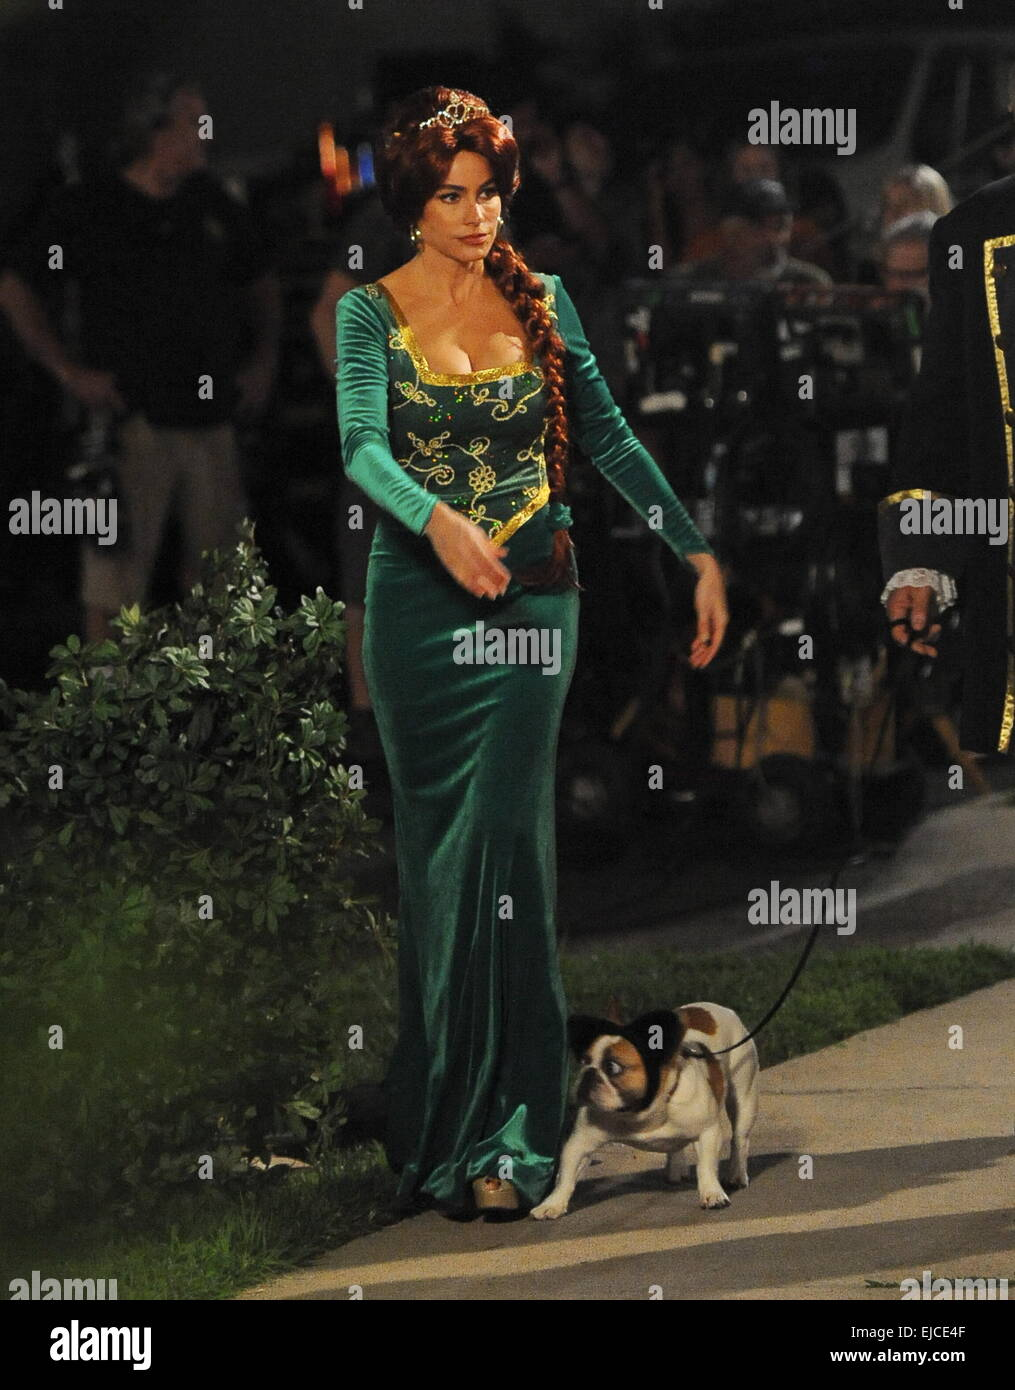 Sofia Vergara wears a Princess Fiona from Shrek costume on the set of  Modern Family  filming a halloween episode. The actress was joined by co star Ed ...  sc 1 st  Alamy & Sofia Vergara wears a Princess Fiona from Shrek costume on the set ...